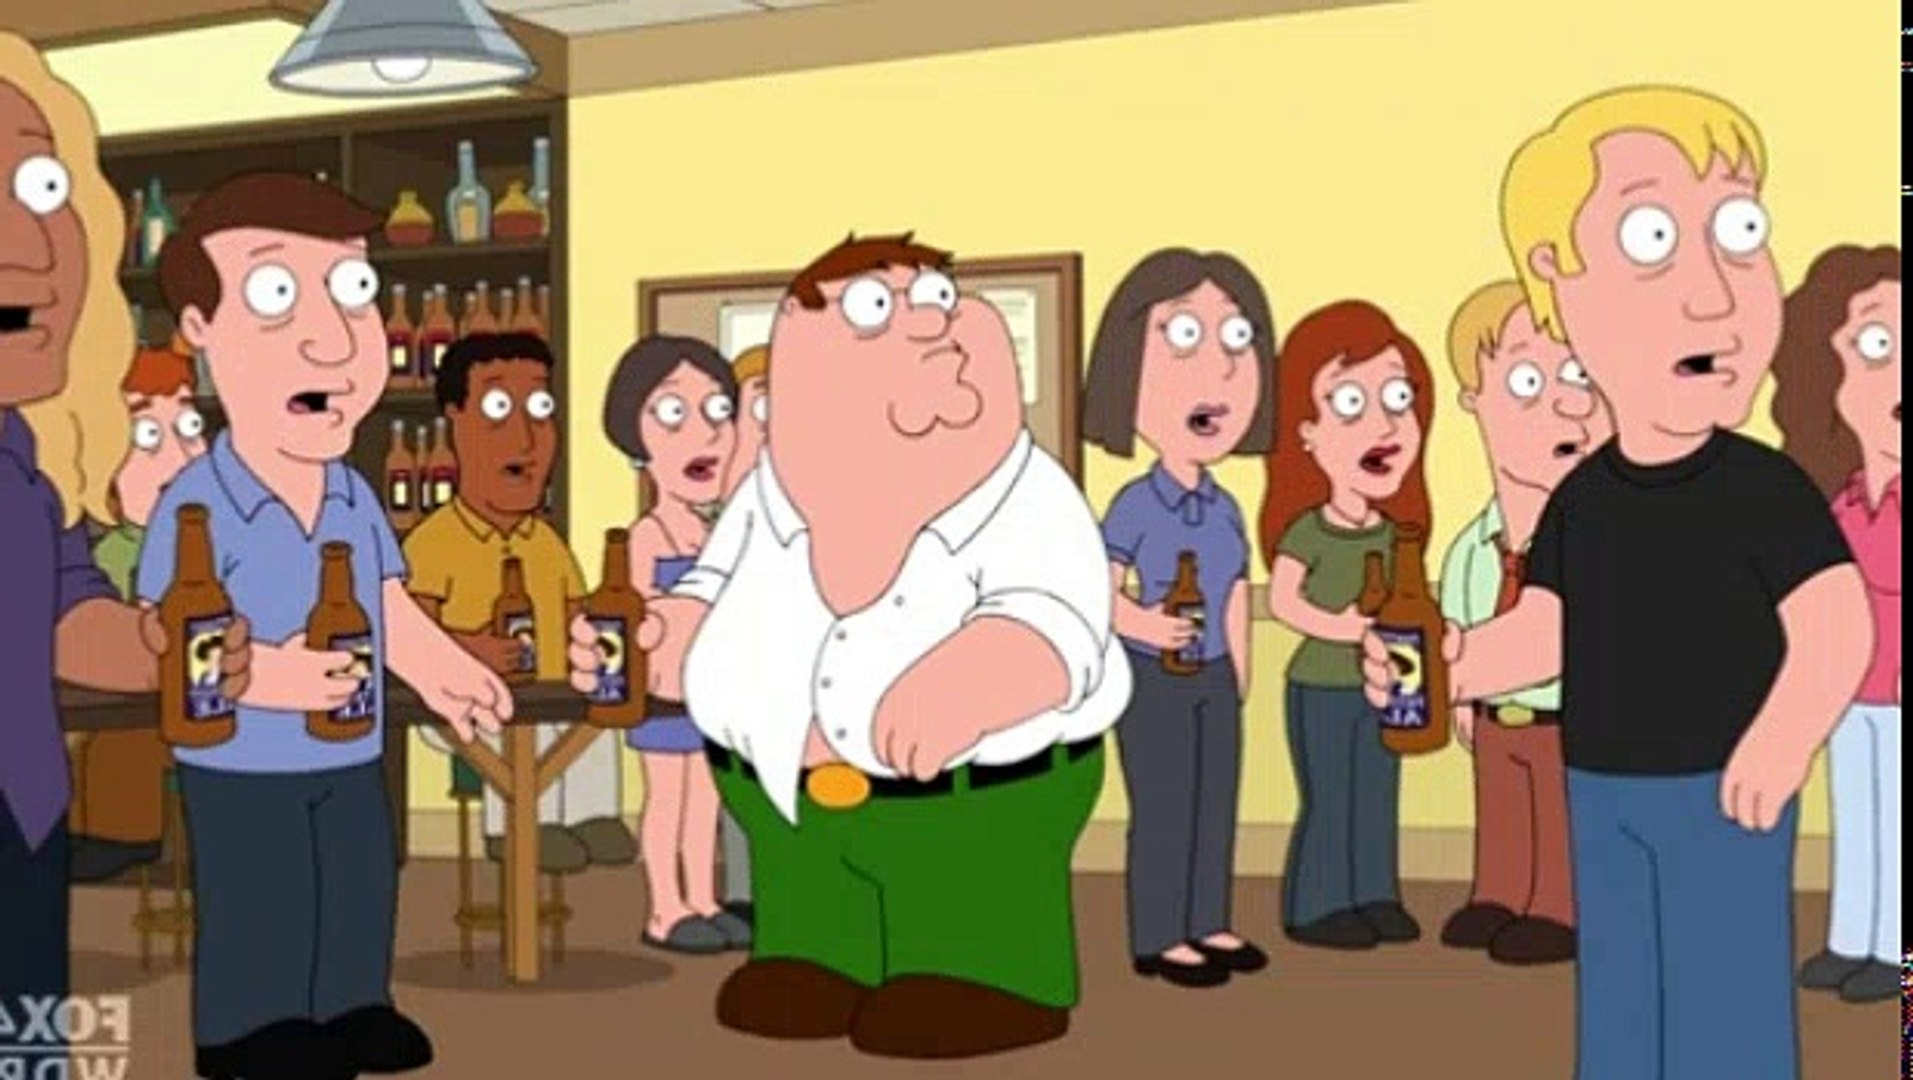 Family Guy S09E10 - Friends 0f Peter G